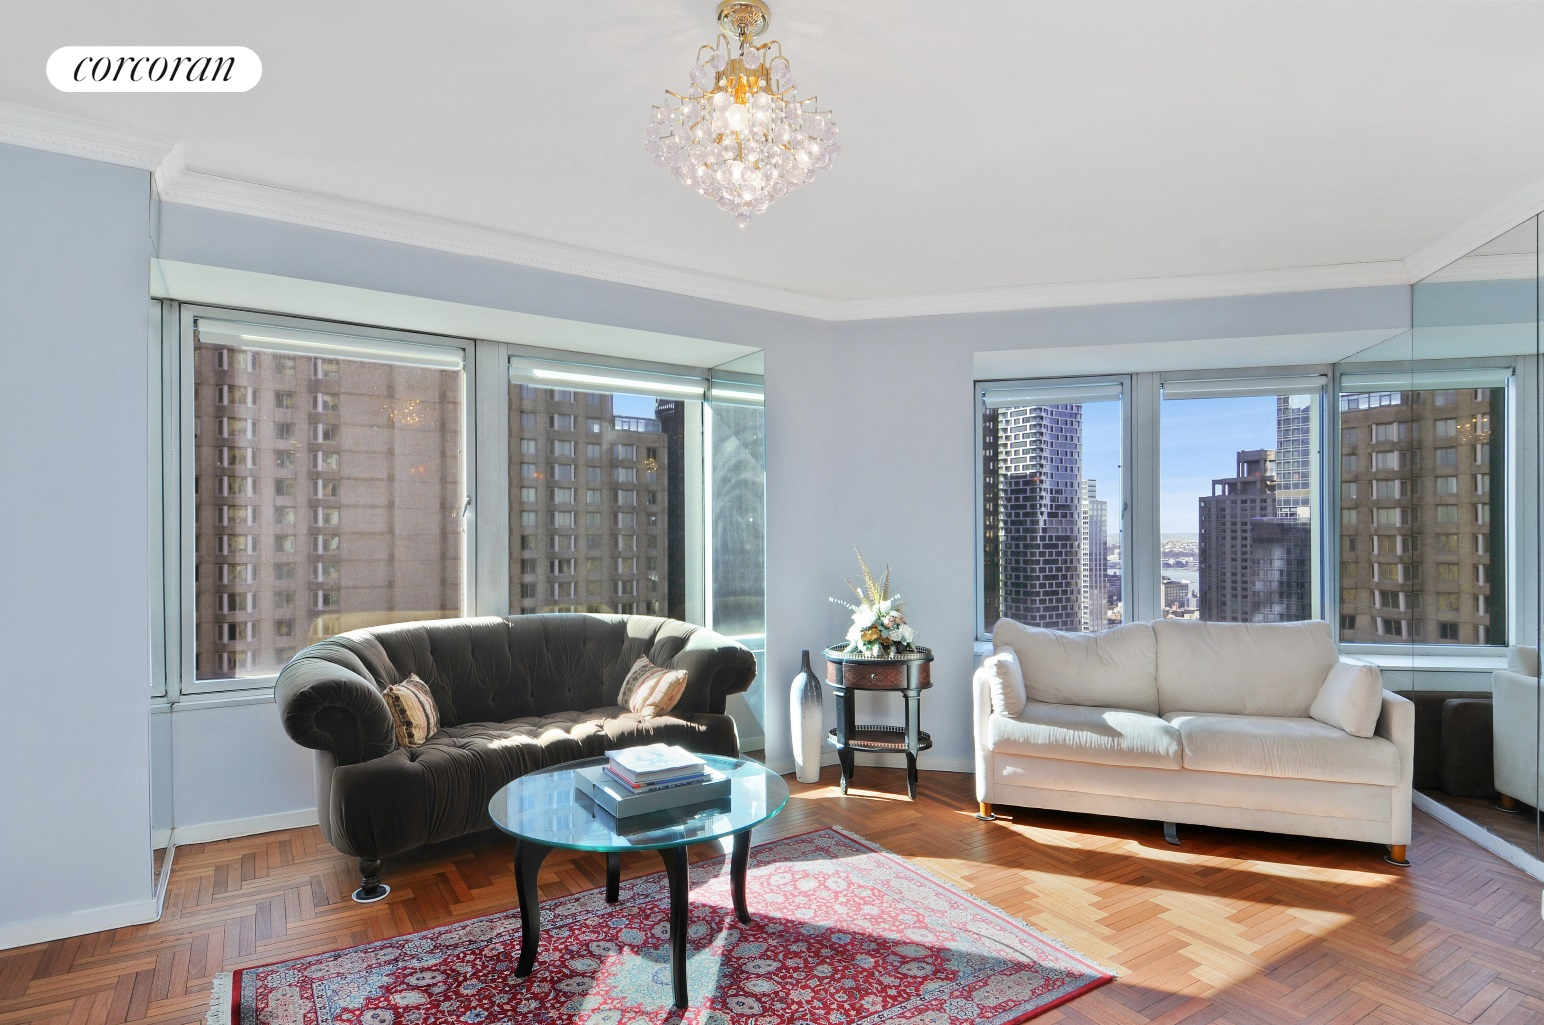 No broker fee.   Newly renovated and fully furnished spacious one bedroom and one and half bathroom in luxury condominium Cityspire, which is located  in the Central of Manhattan,  south from the Central Park, a  block to Fifth Avenue.   The apartment has hard wood floors, marble bathroom, powder room, crown moldings, fire place, granite counter-top and stainless appliances. It has open city and river views, tastefully furnished with two plasma TV, generous closet space, and is in excellent condition. The gym, swimming pool, sauna and steam rooms, and party lounge make your city life more comfortable and enjoyable. Corporations, diplomats and pied--terre  are welcome.  Close to  all  public transportation, fine dinning and shopping.   Sorry no pets. Can be rented furnished or unfurnished at the same price.